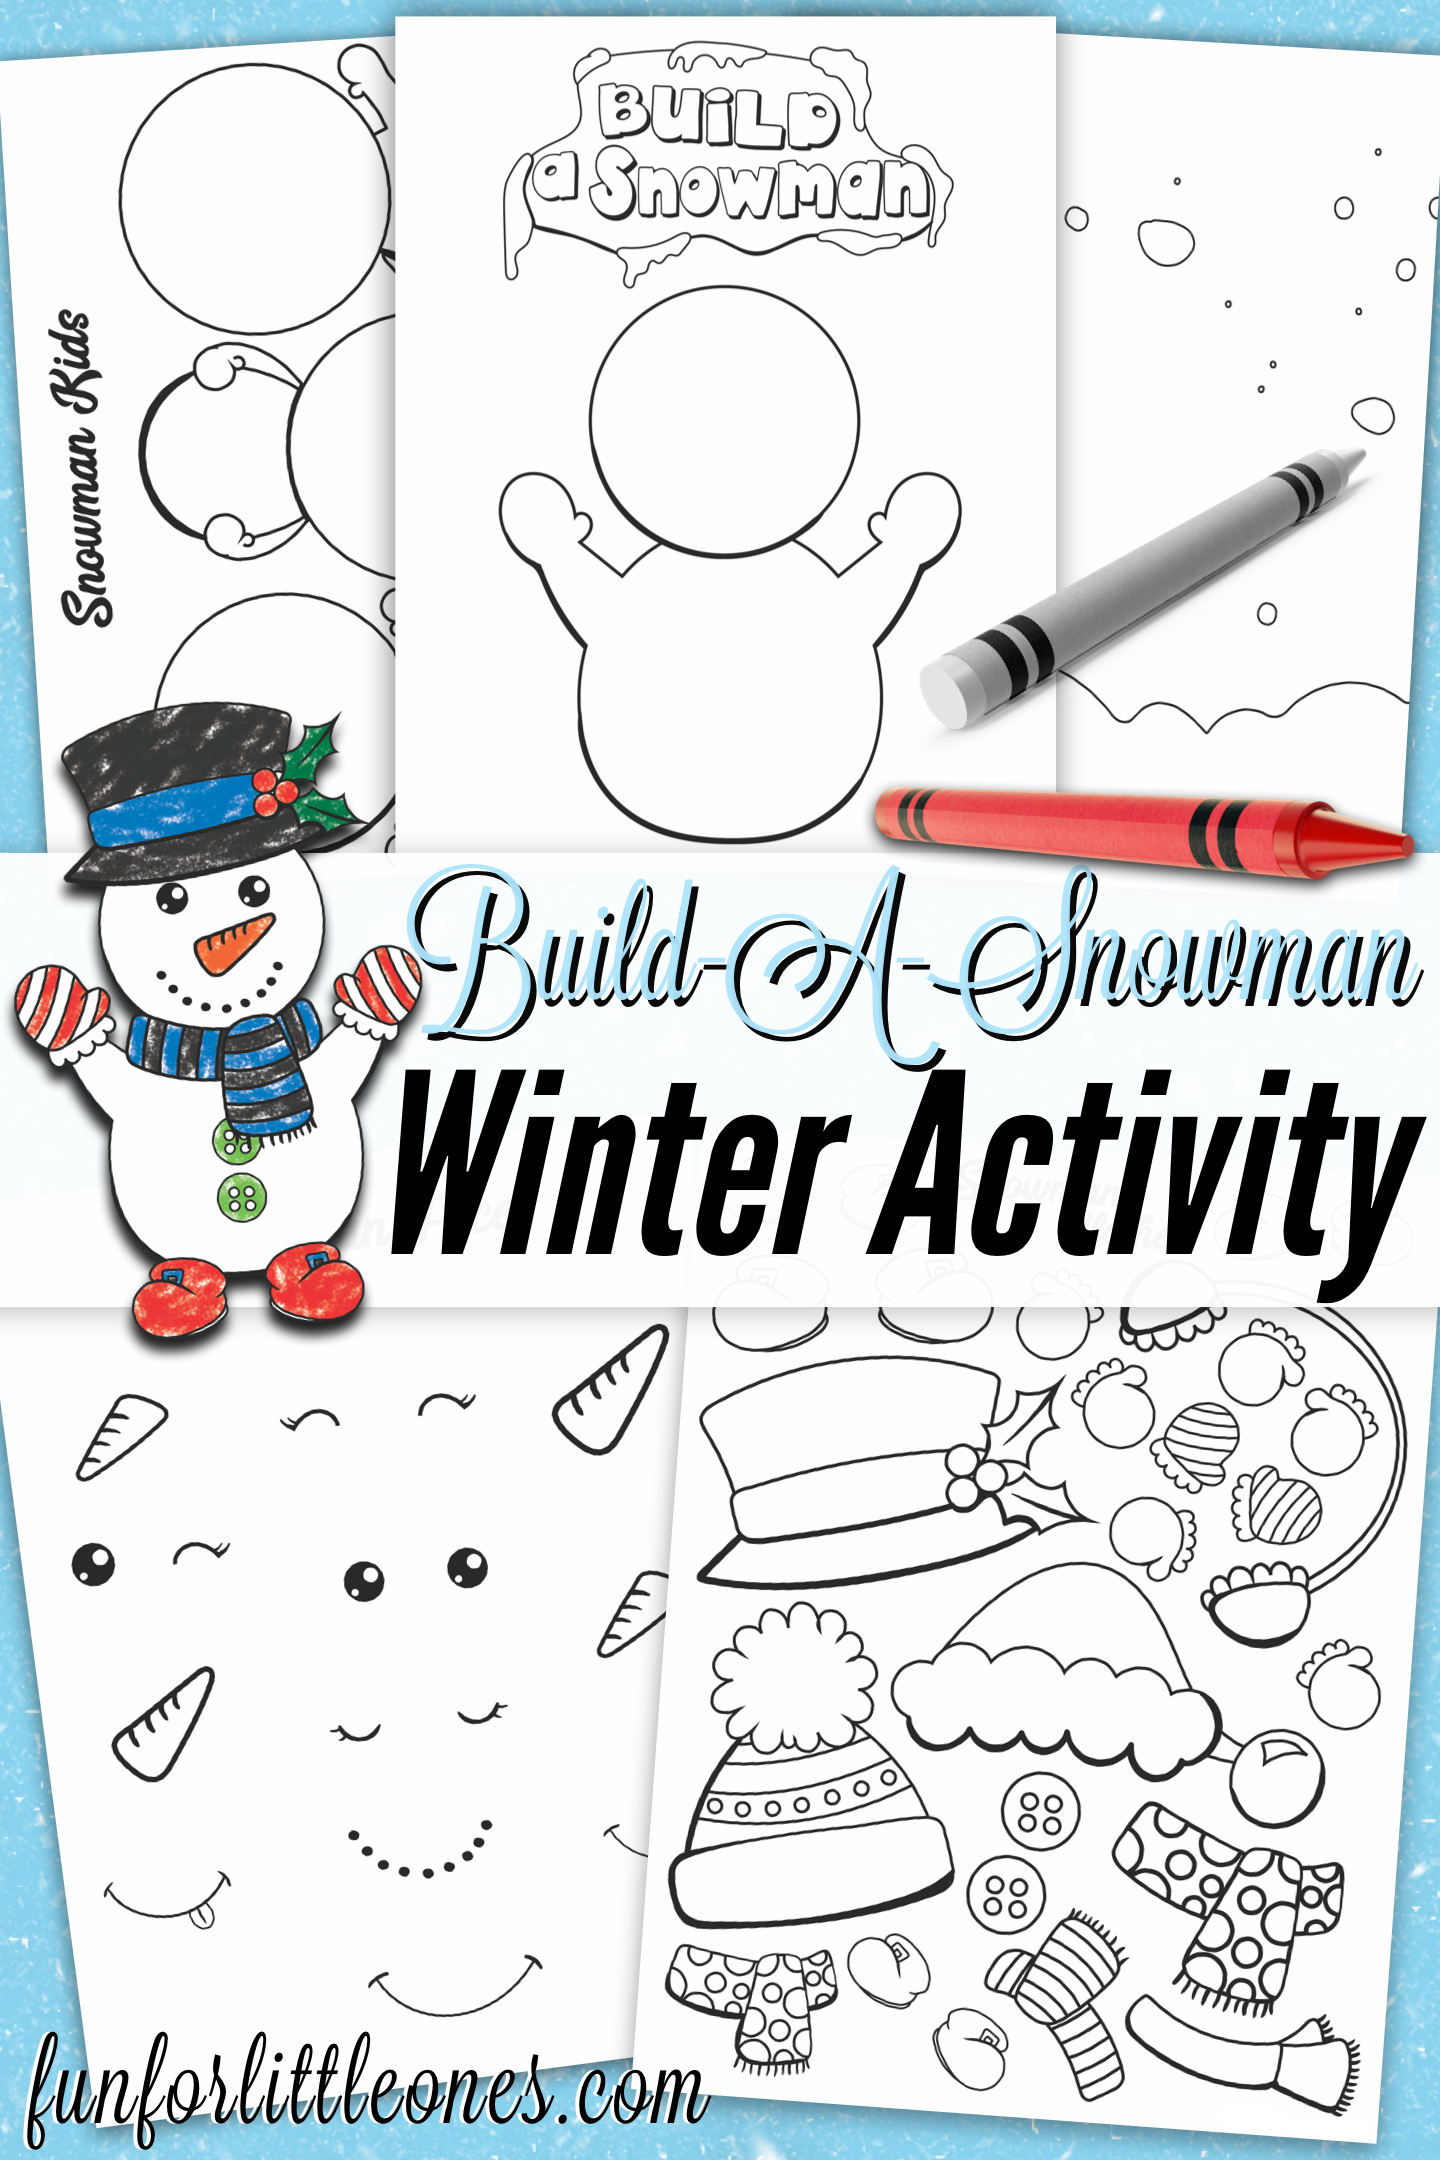 Build A Snowman Winter Activity For Kids Free Printable